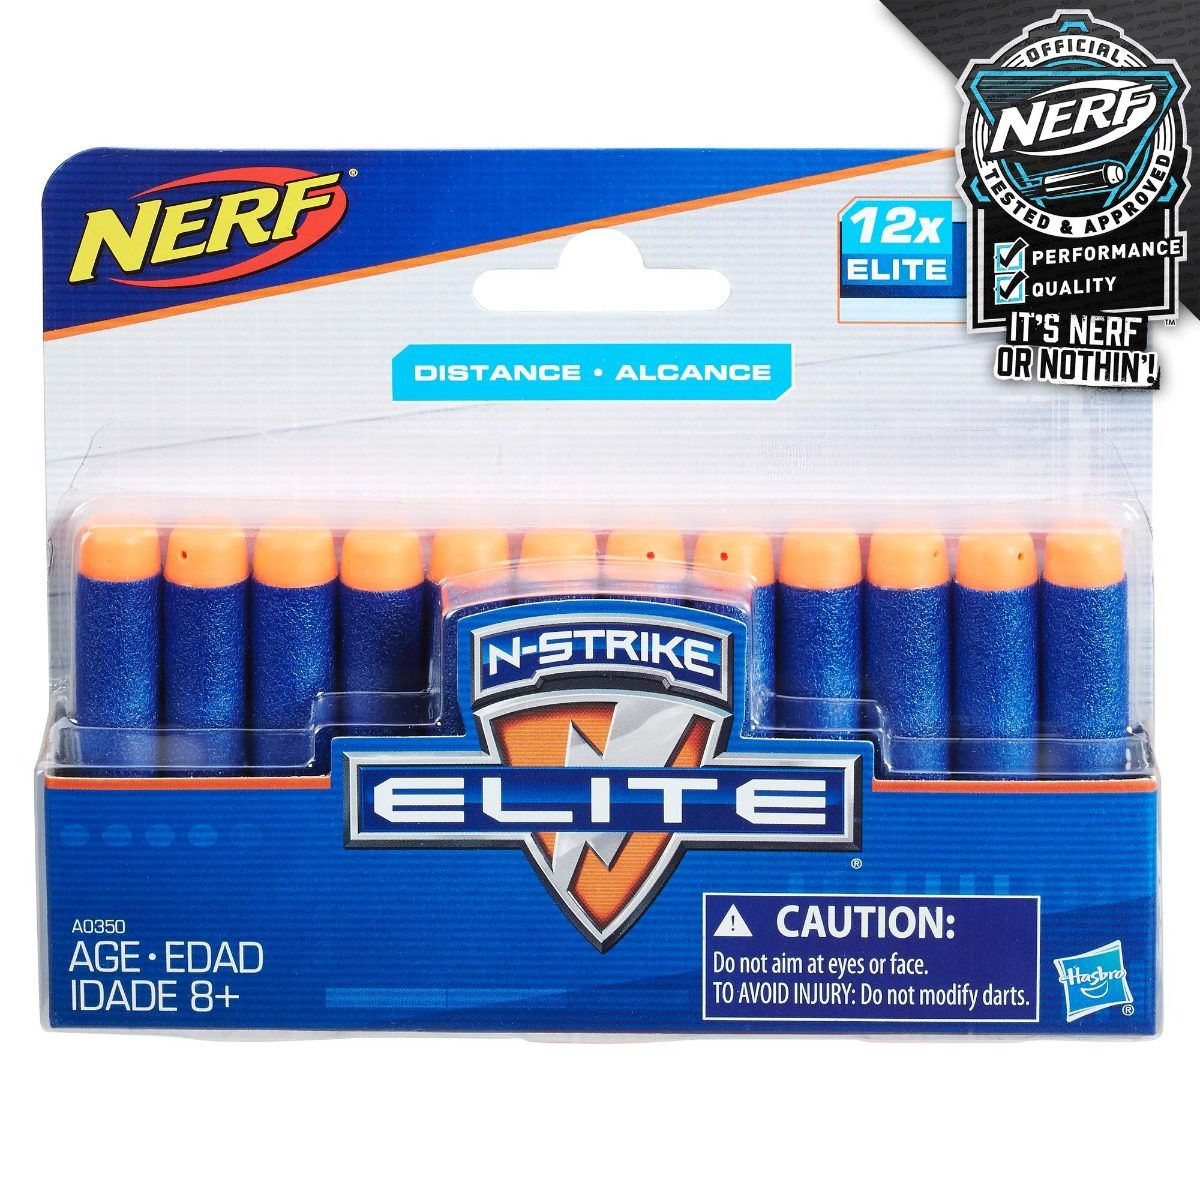 Dardos Nerf - N-strike Elite - 12x - Hasbro